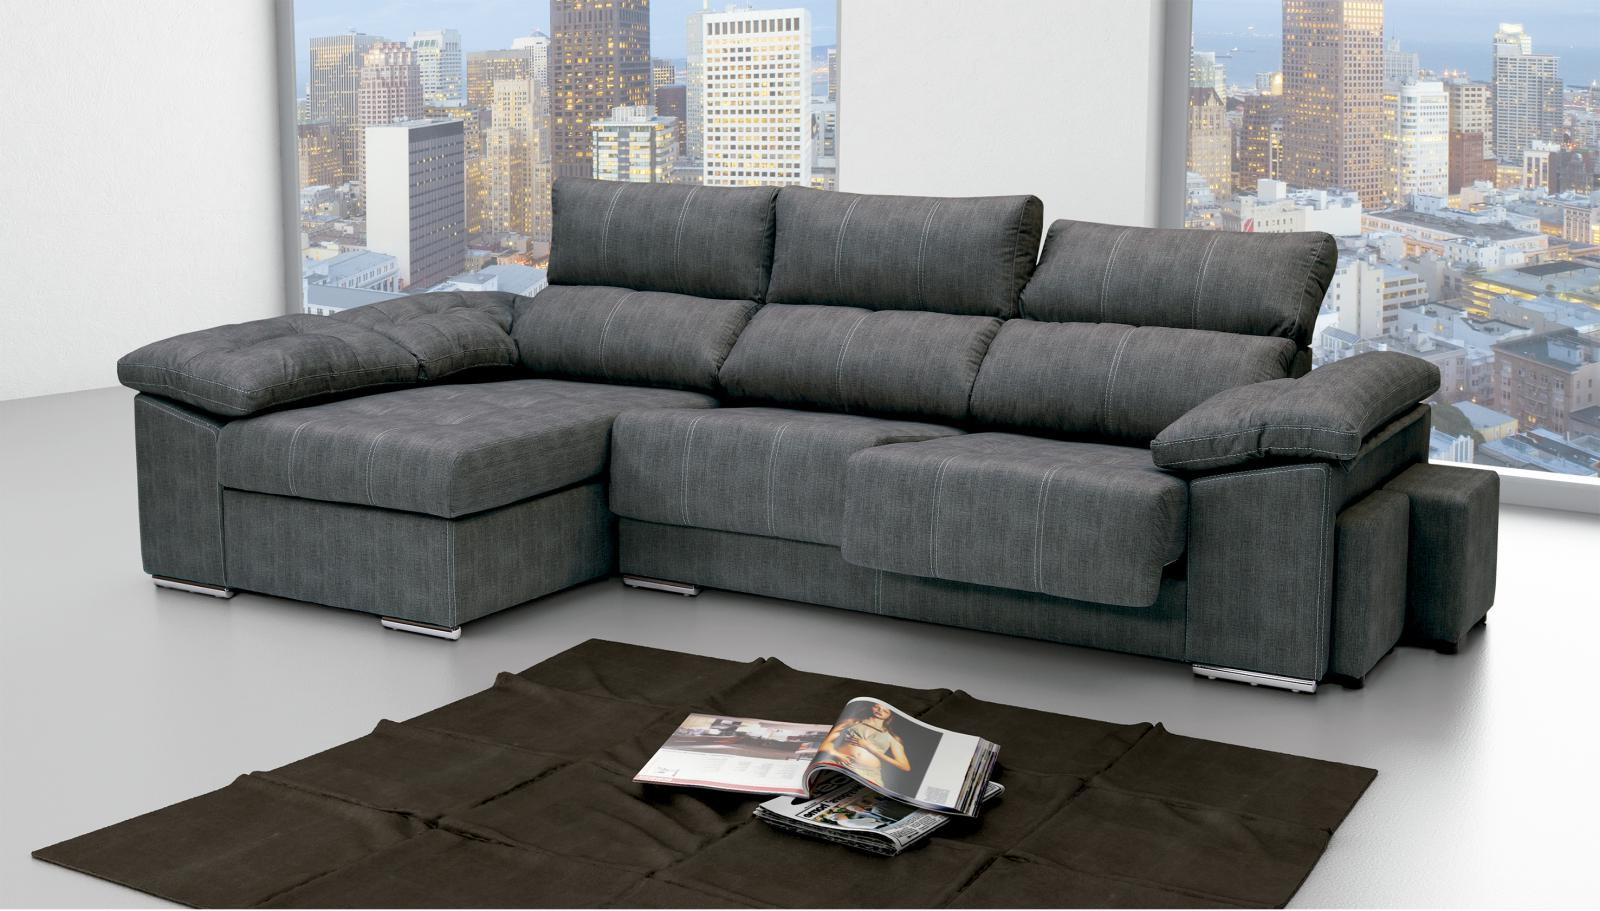 Sofa Chaiselongue Y7du Prar sofa Chaiselongue Mod Cayenne En Tienda Muebles Online